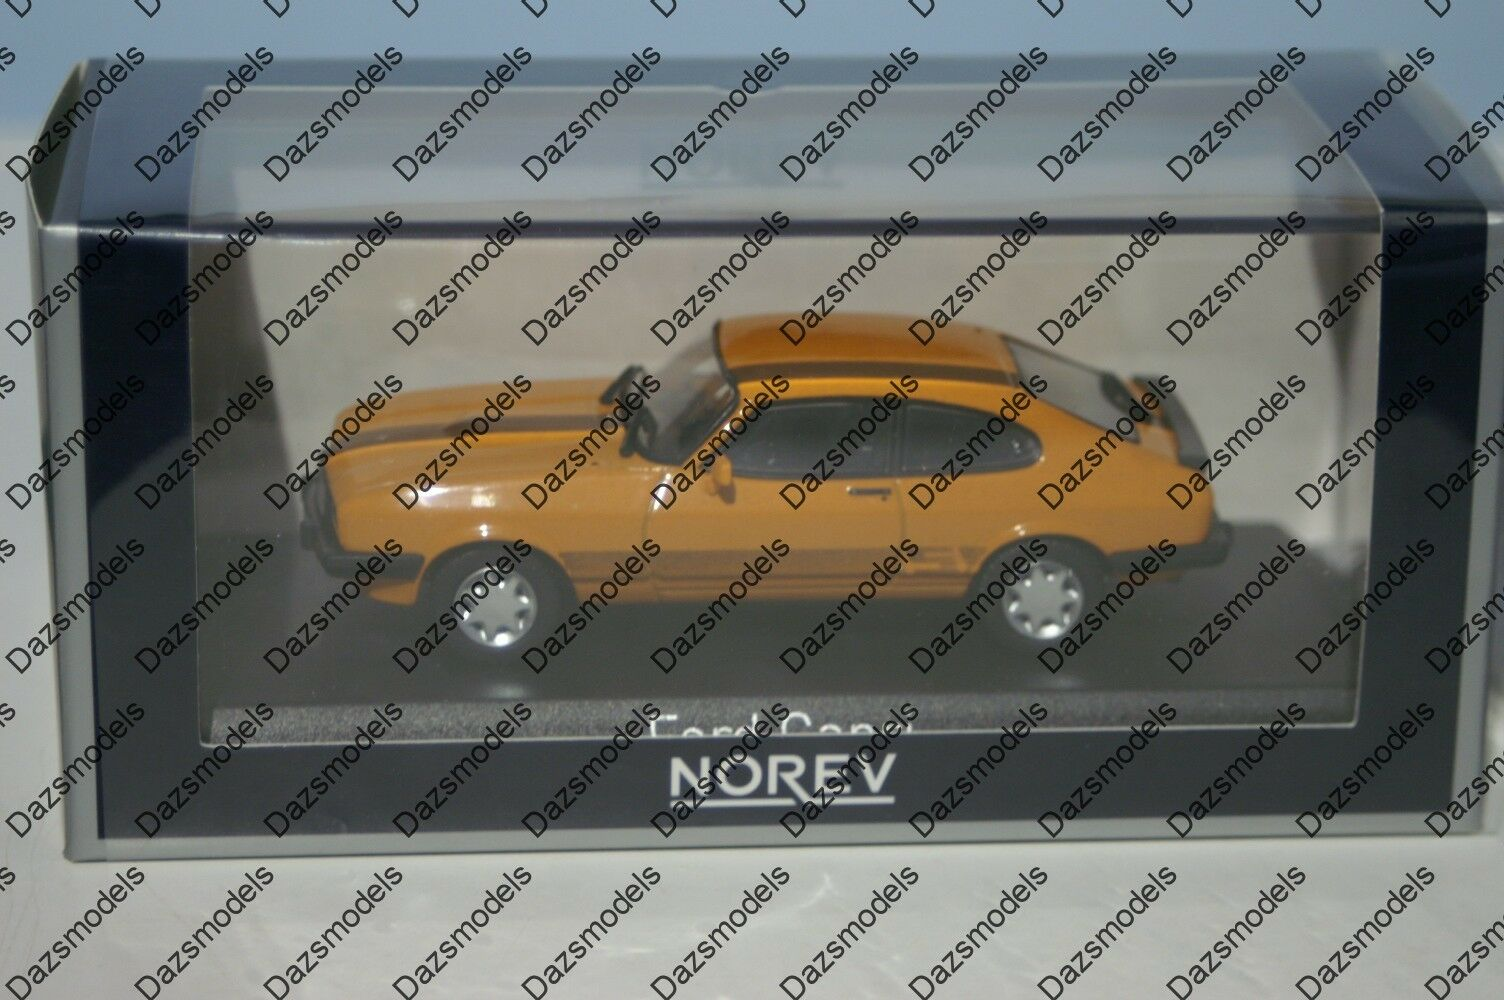 Norev Ford Capri Mk3 orange Mk3 1980 1 43 Diecast 270563